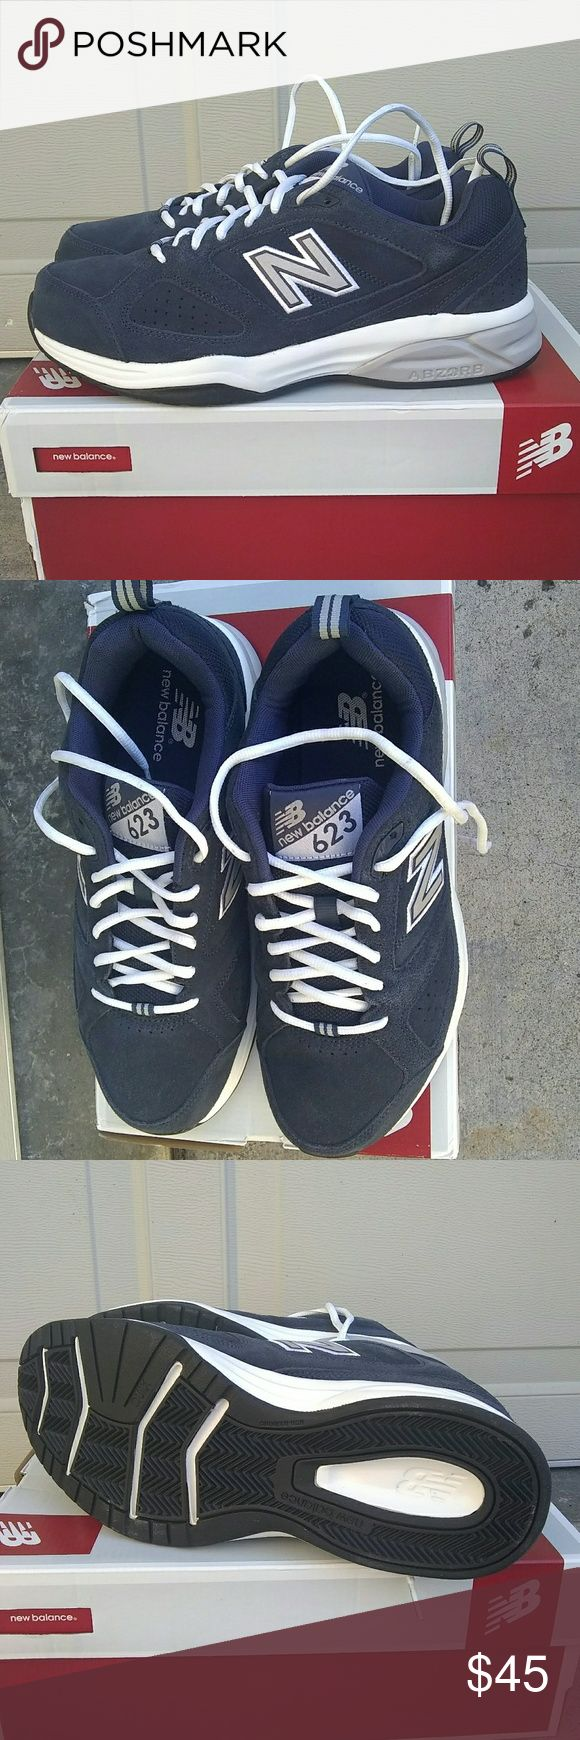 NWB Men's New Balance Wide Athletic Shoes 9.5 2E Navy blue suede, Abzorb style, wide 2E, new with box, size 9.5 New Balance Shoes Athletic Shoes